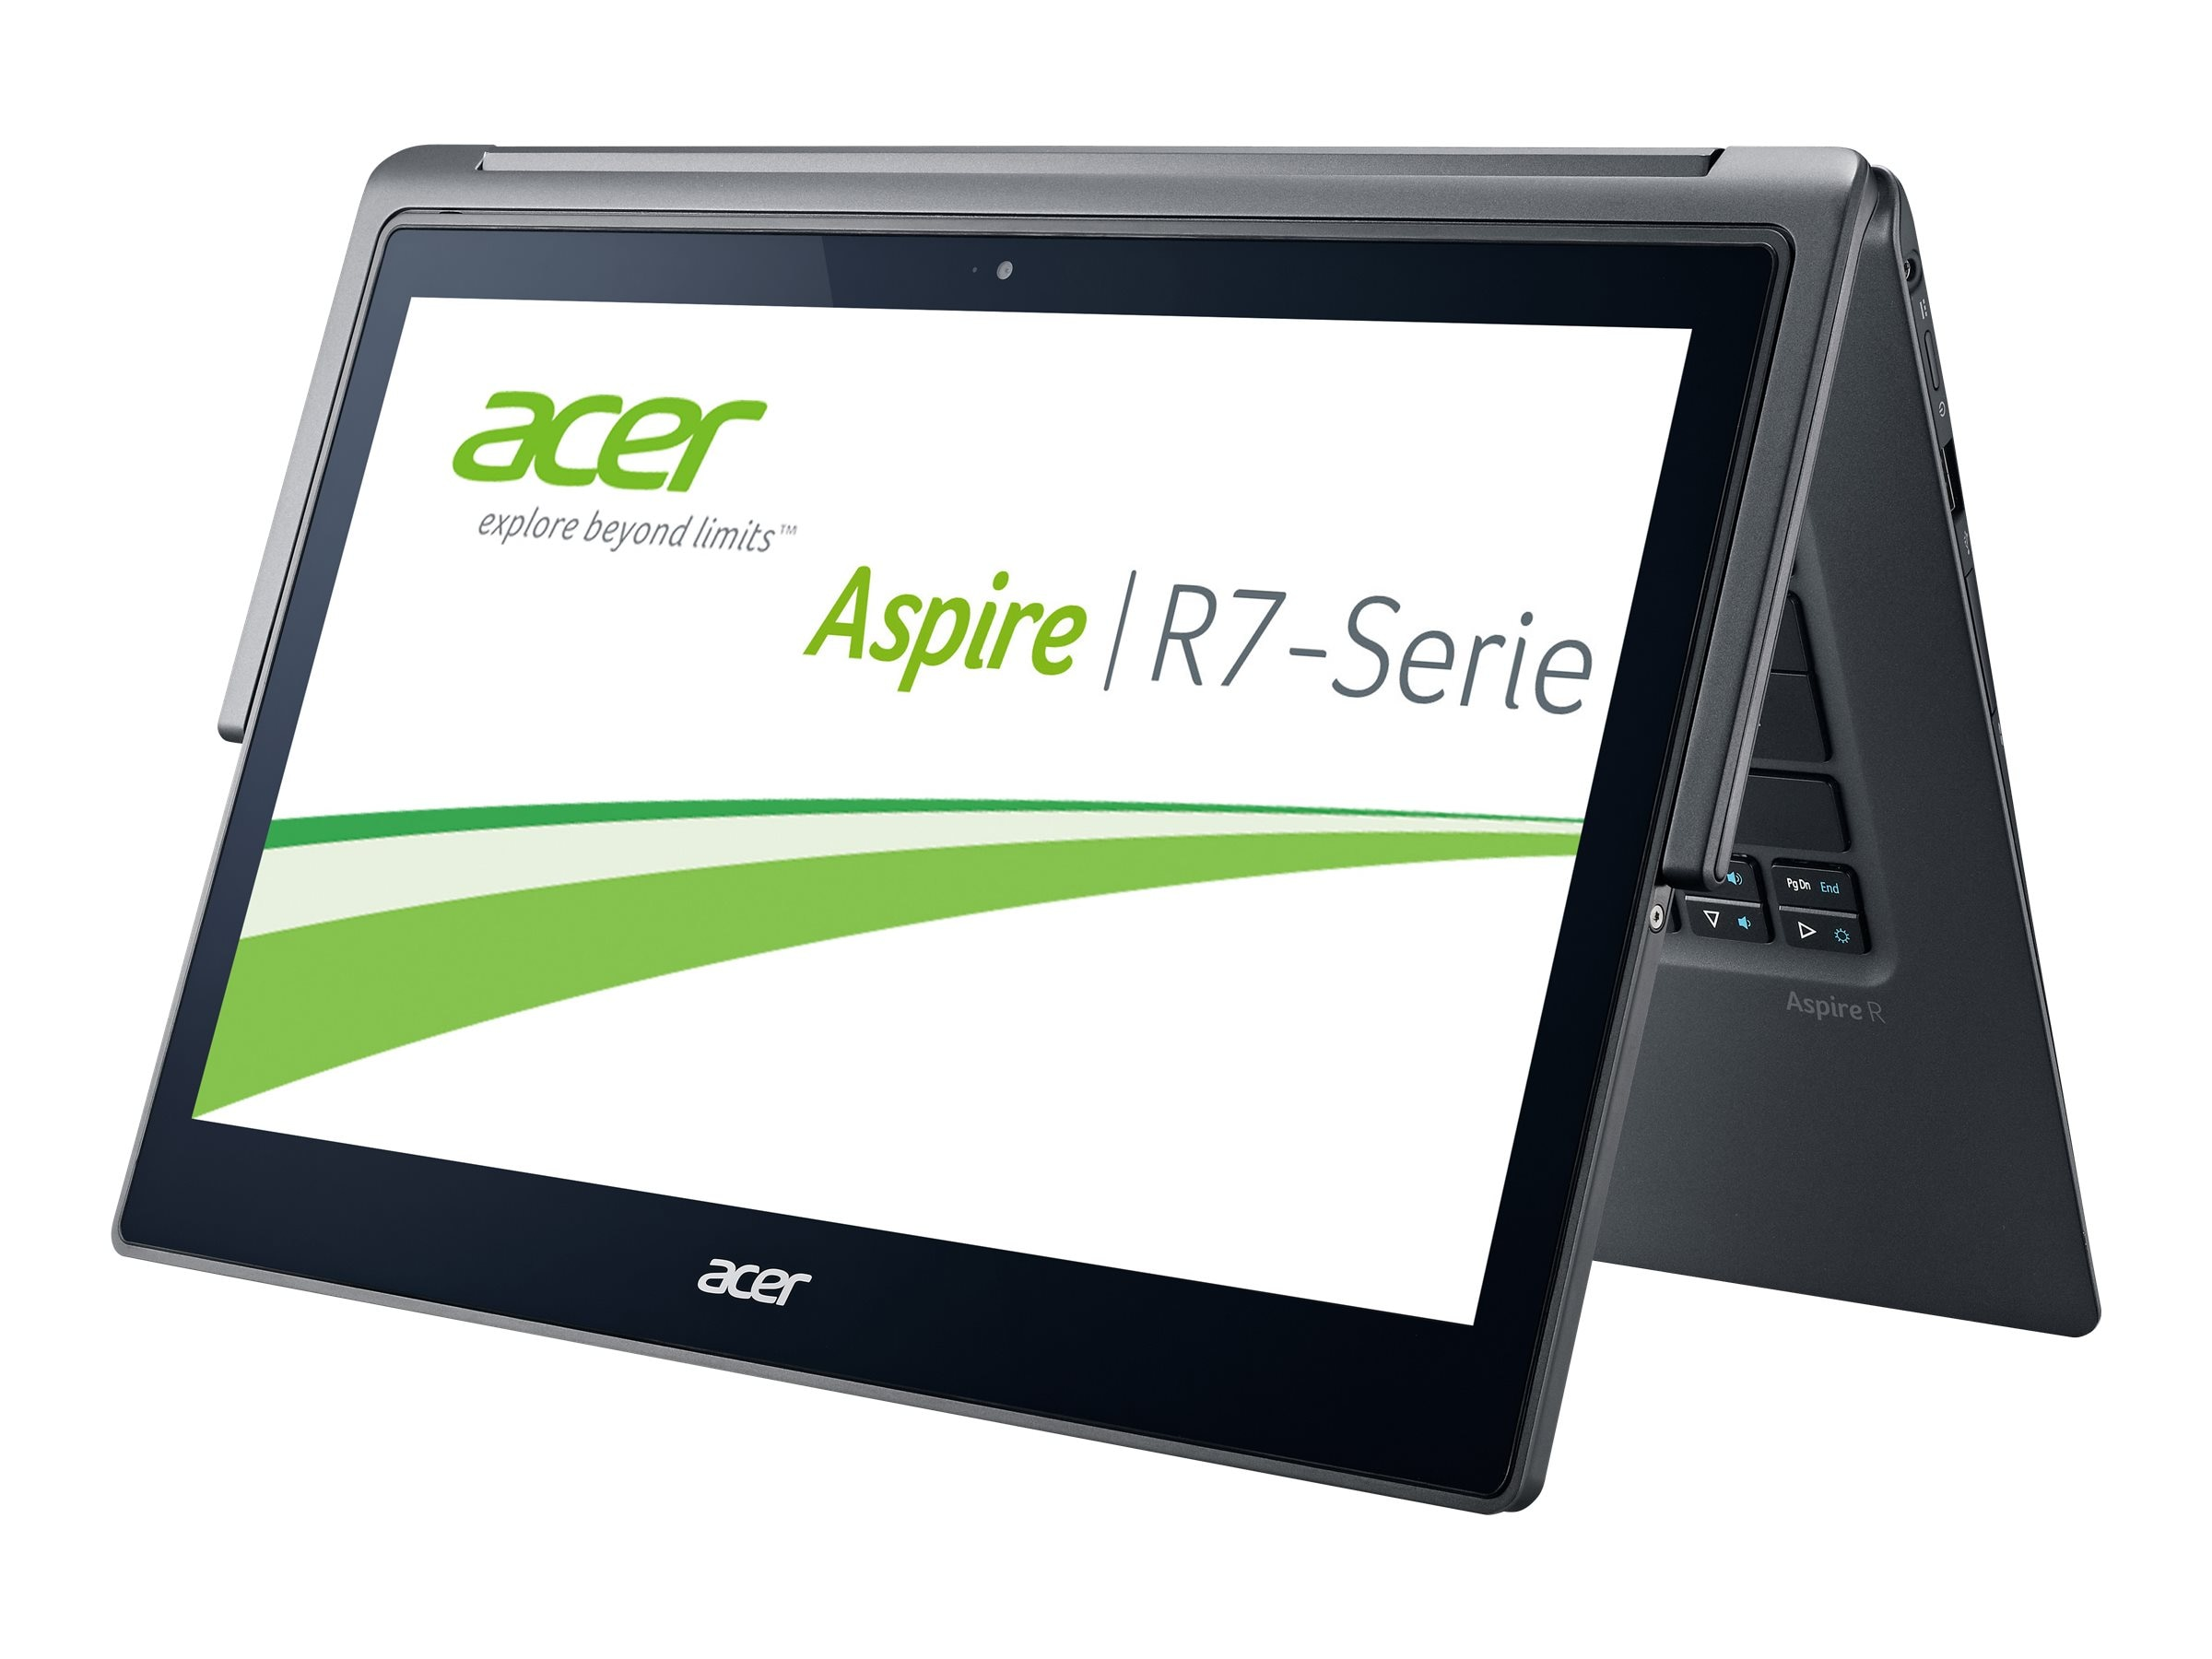 Acer Aspire R7-371T-59Q1 Core i5-5200U 2.2GHz 8GB 2x128GB SSD ac GNIC BT WC 4C 13.3 FHD IPS MT W8.1-64, NX.MQPAA.012, 18896044, Notebooks - Convertible